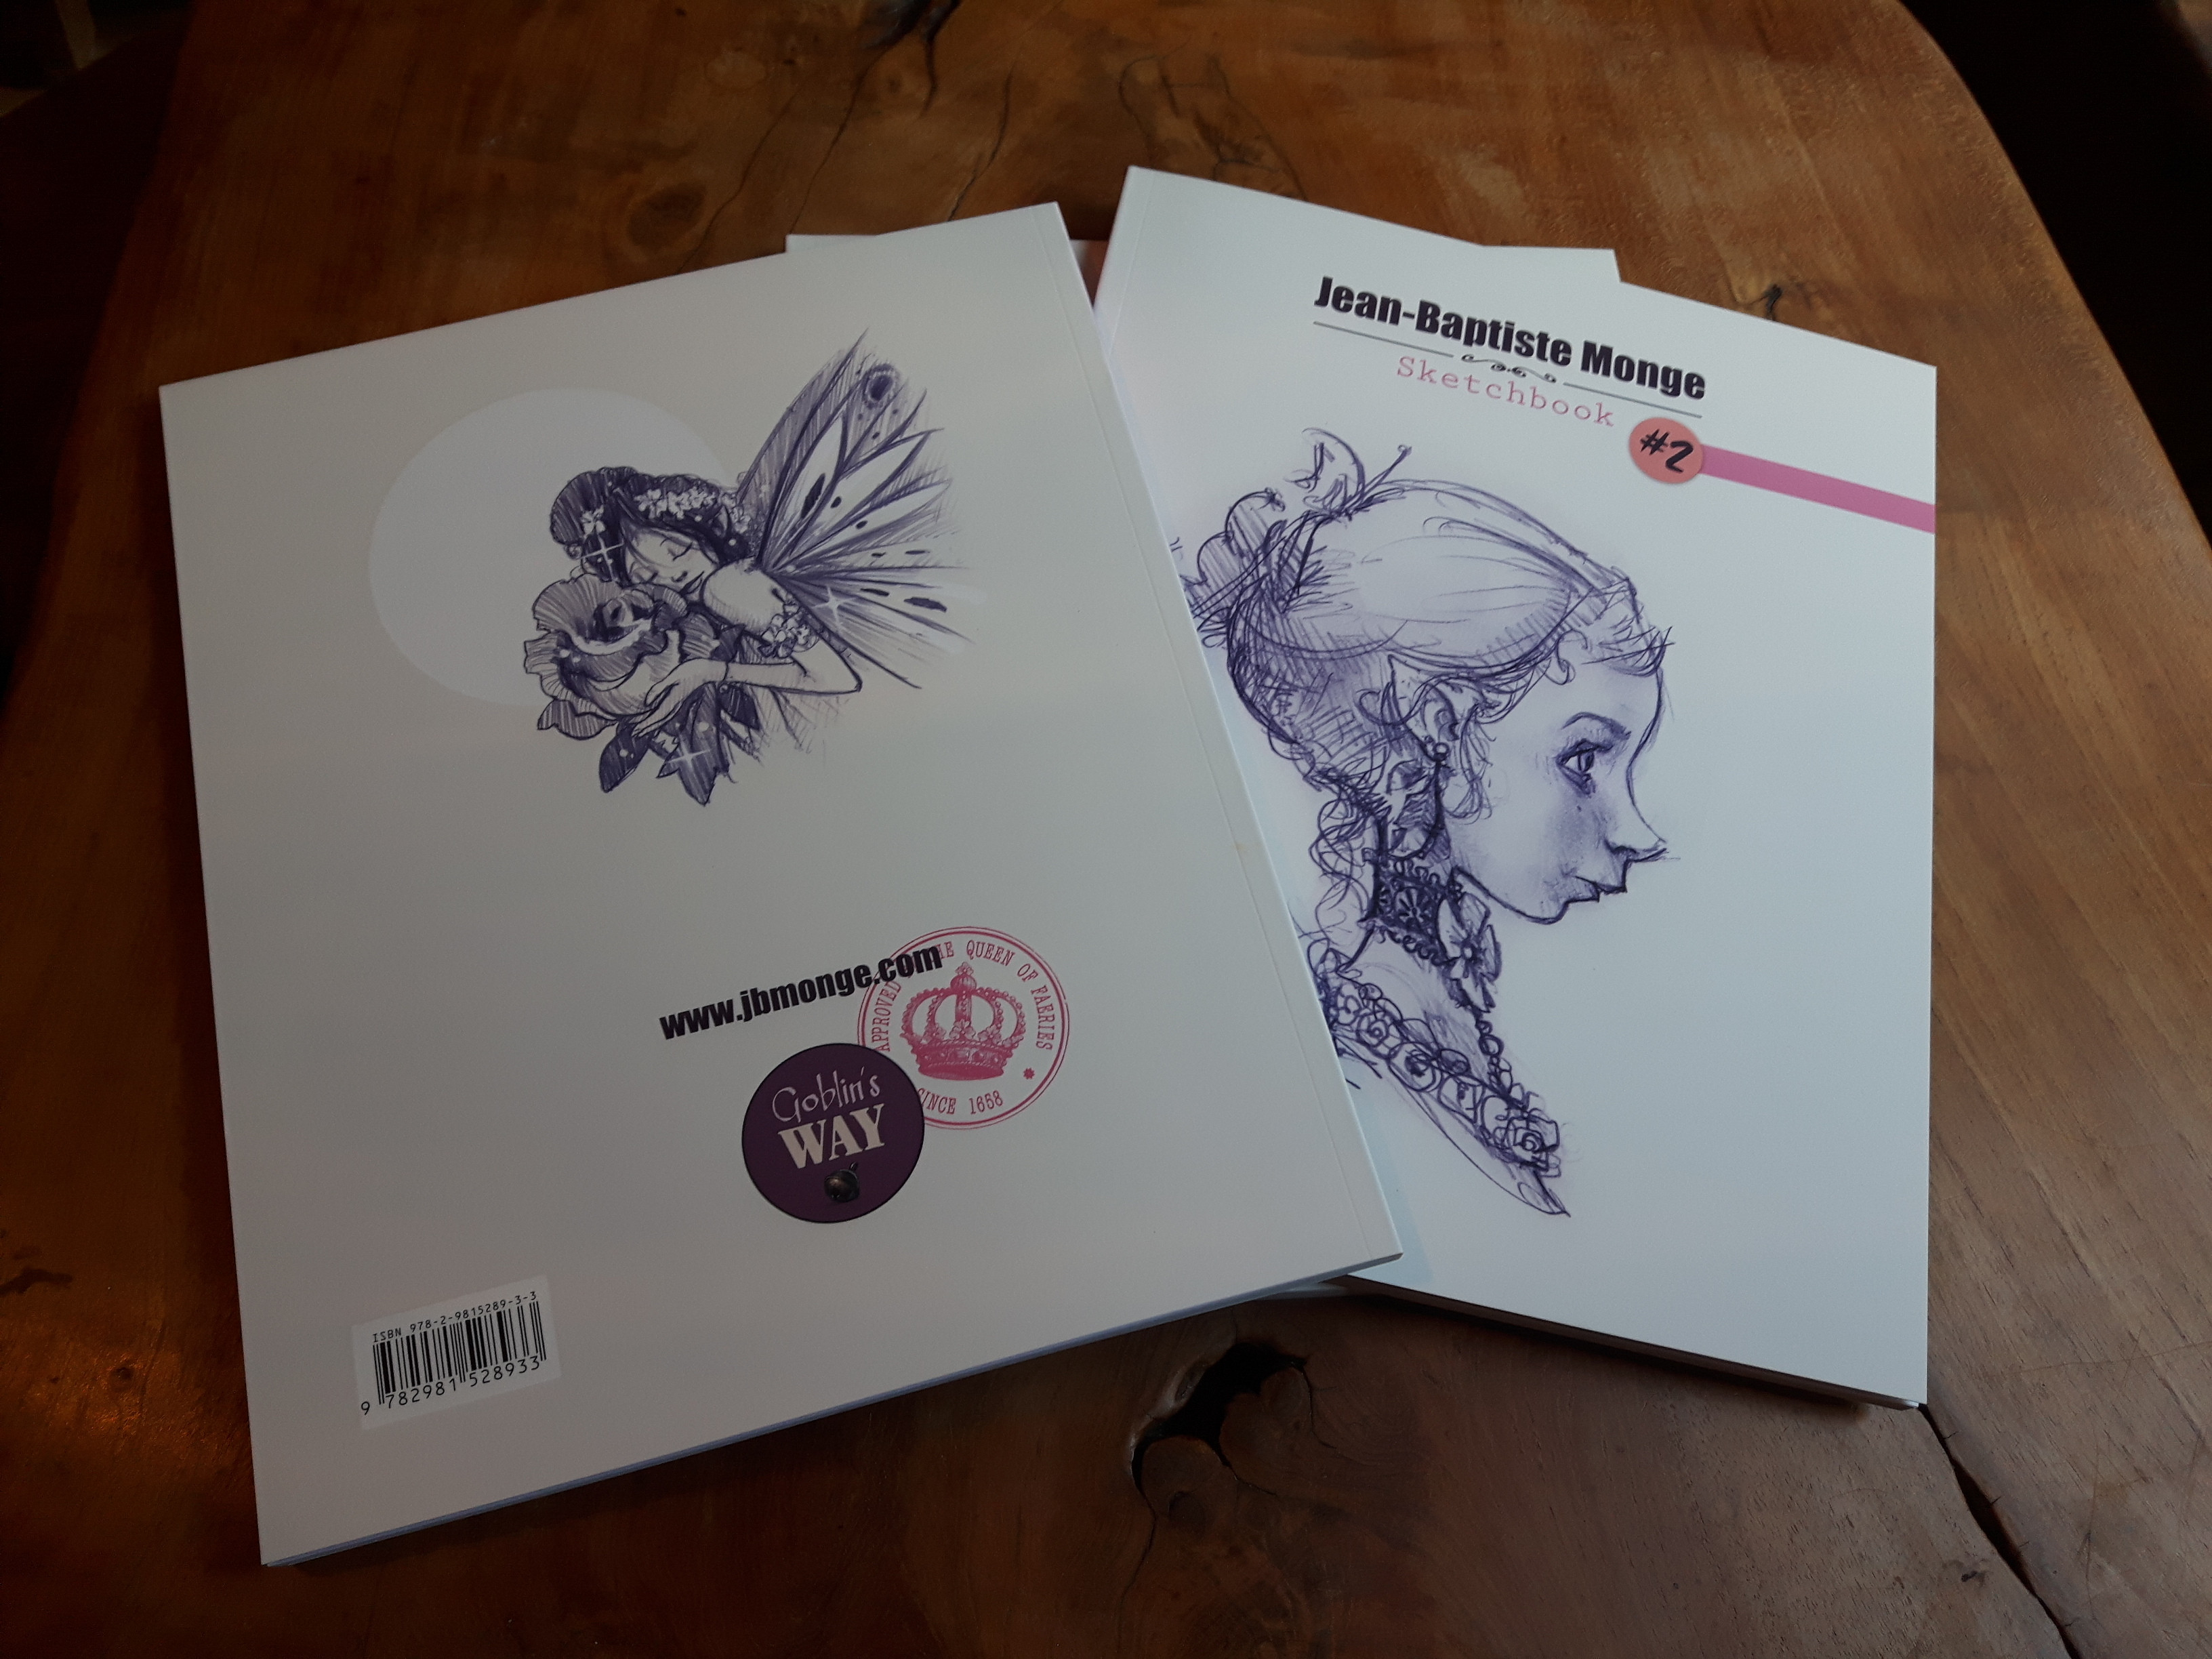 The cover - back and front